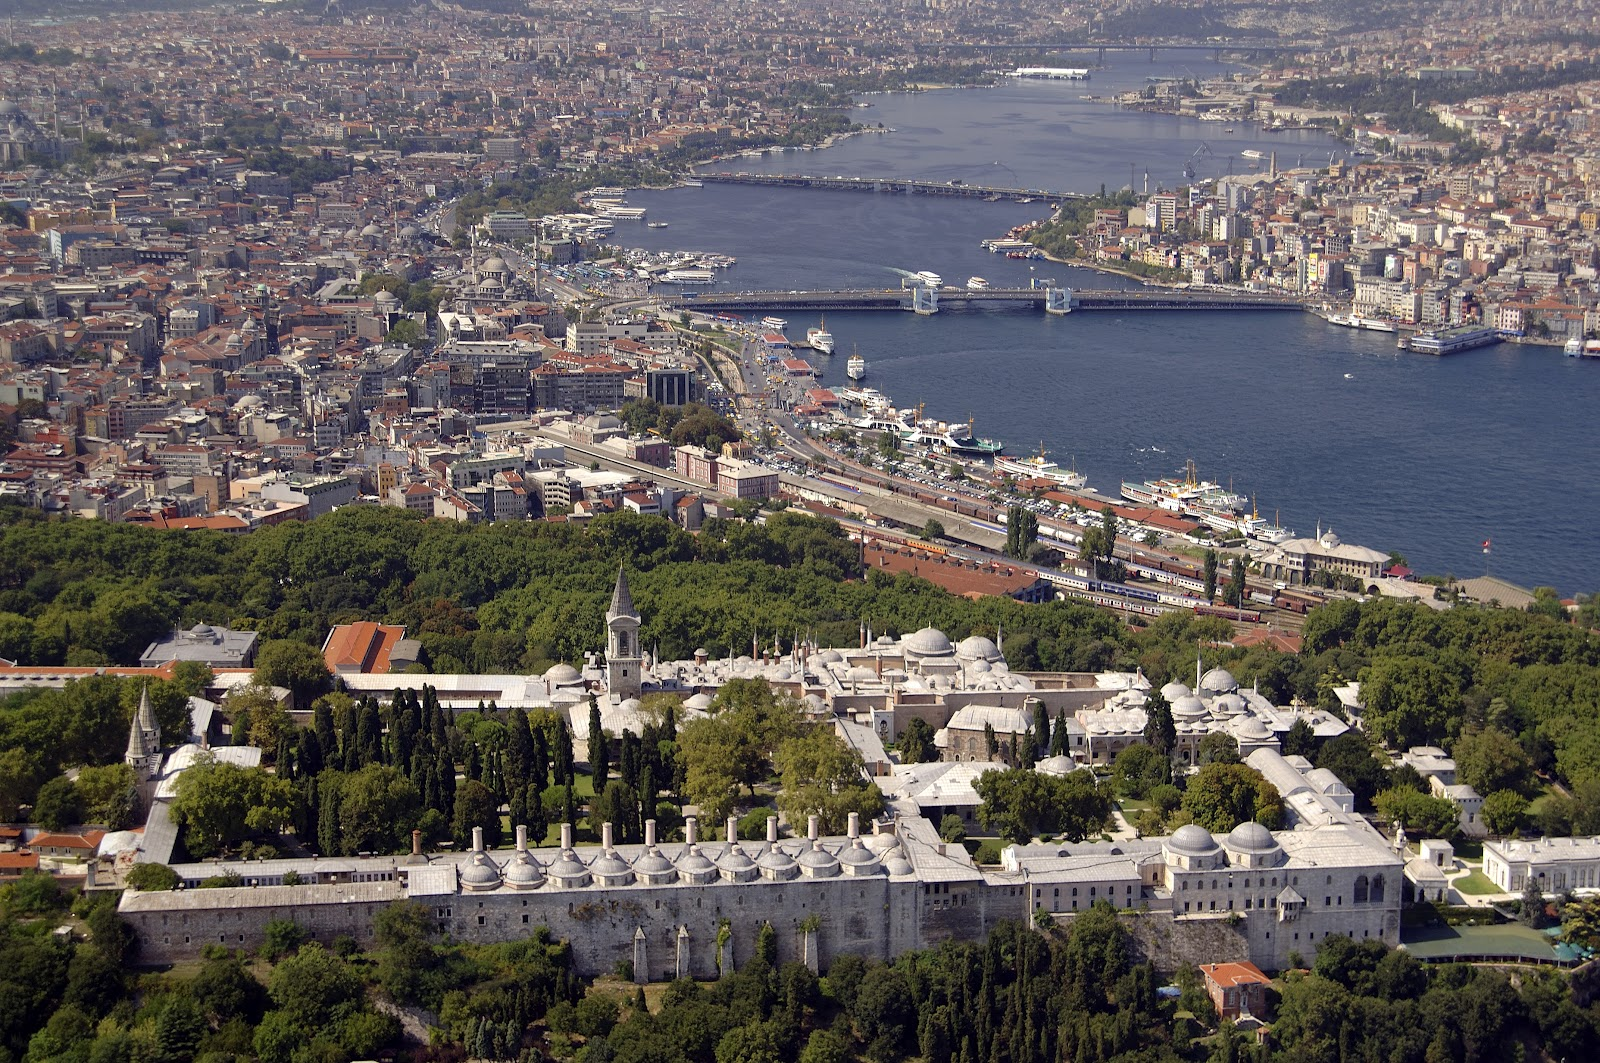 topkapi-palace-photo-from-sky1.jpg